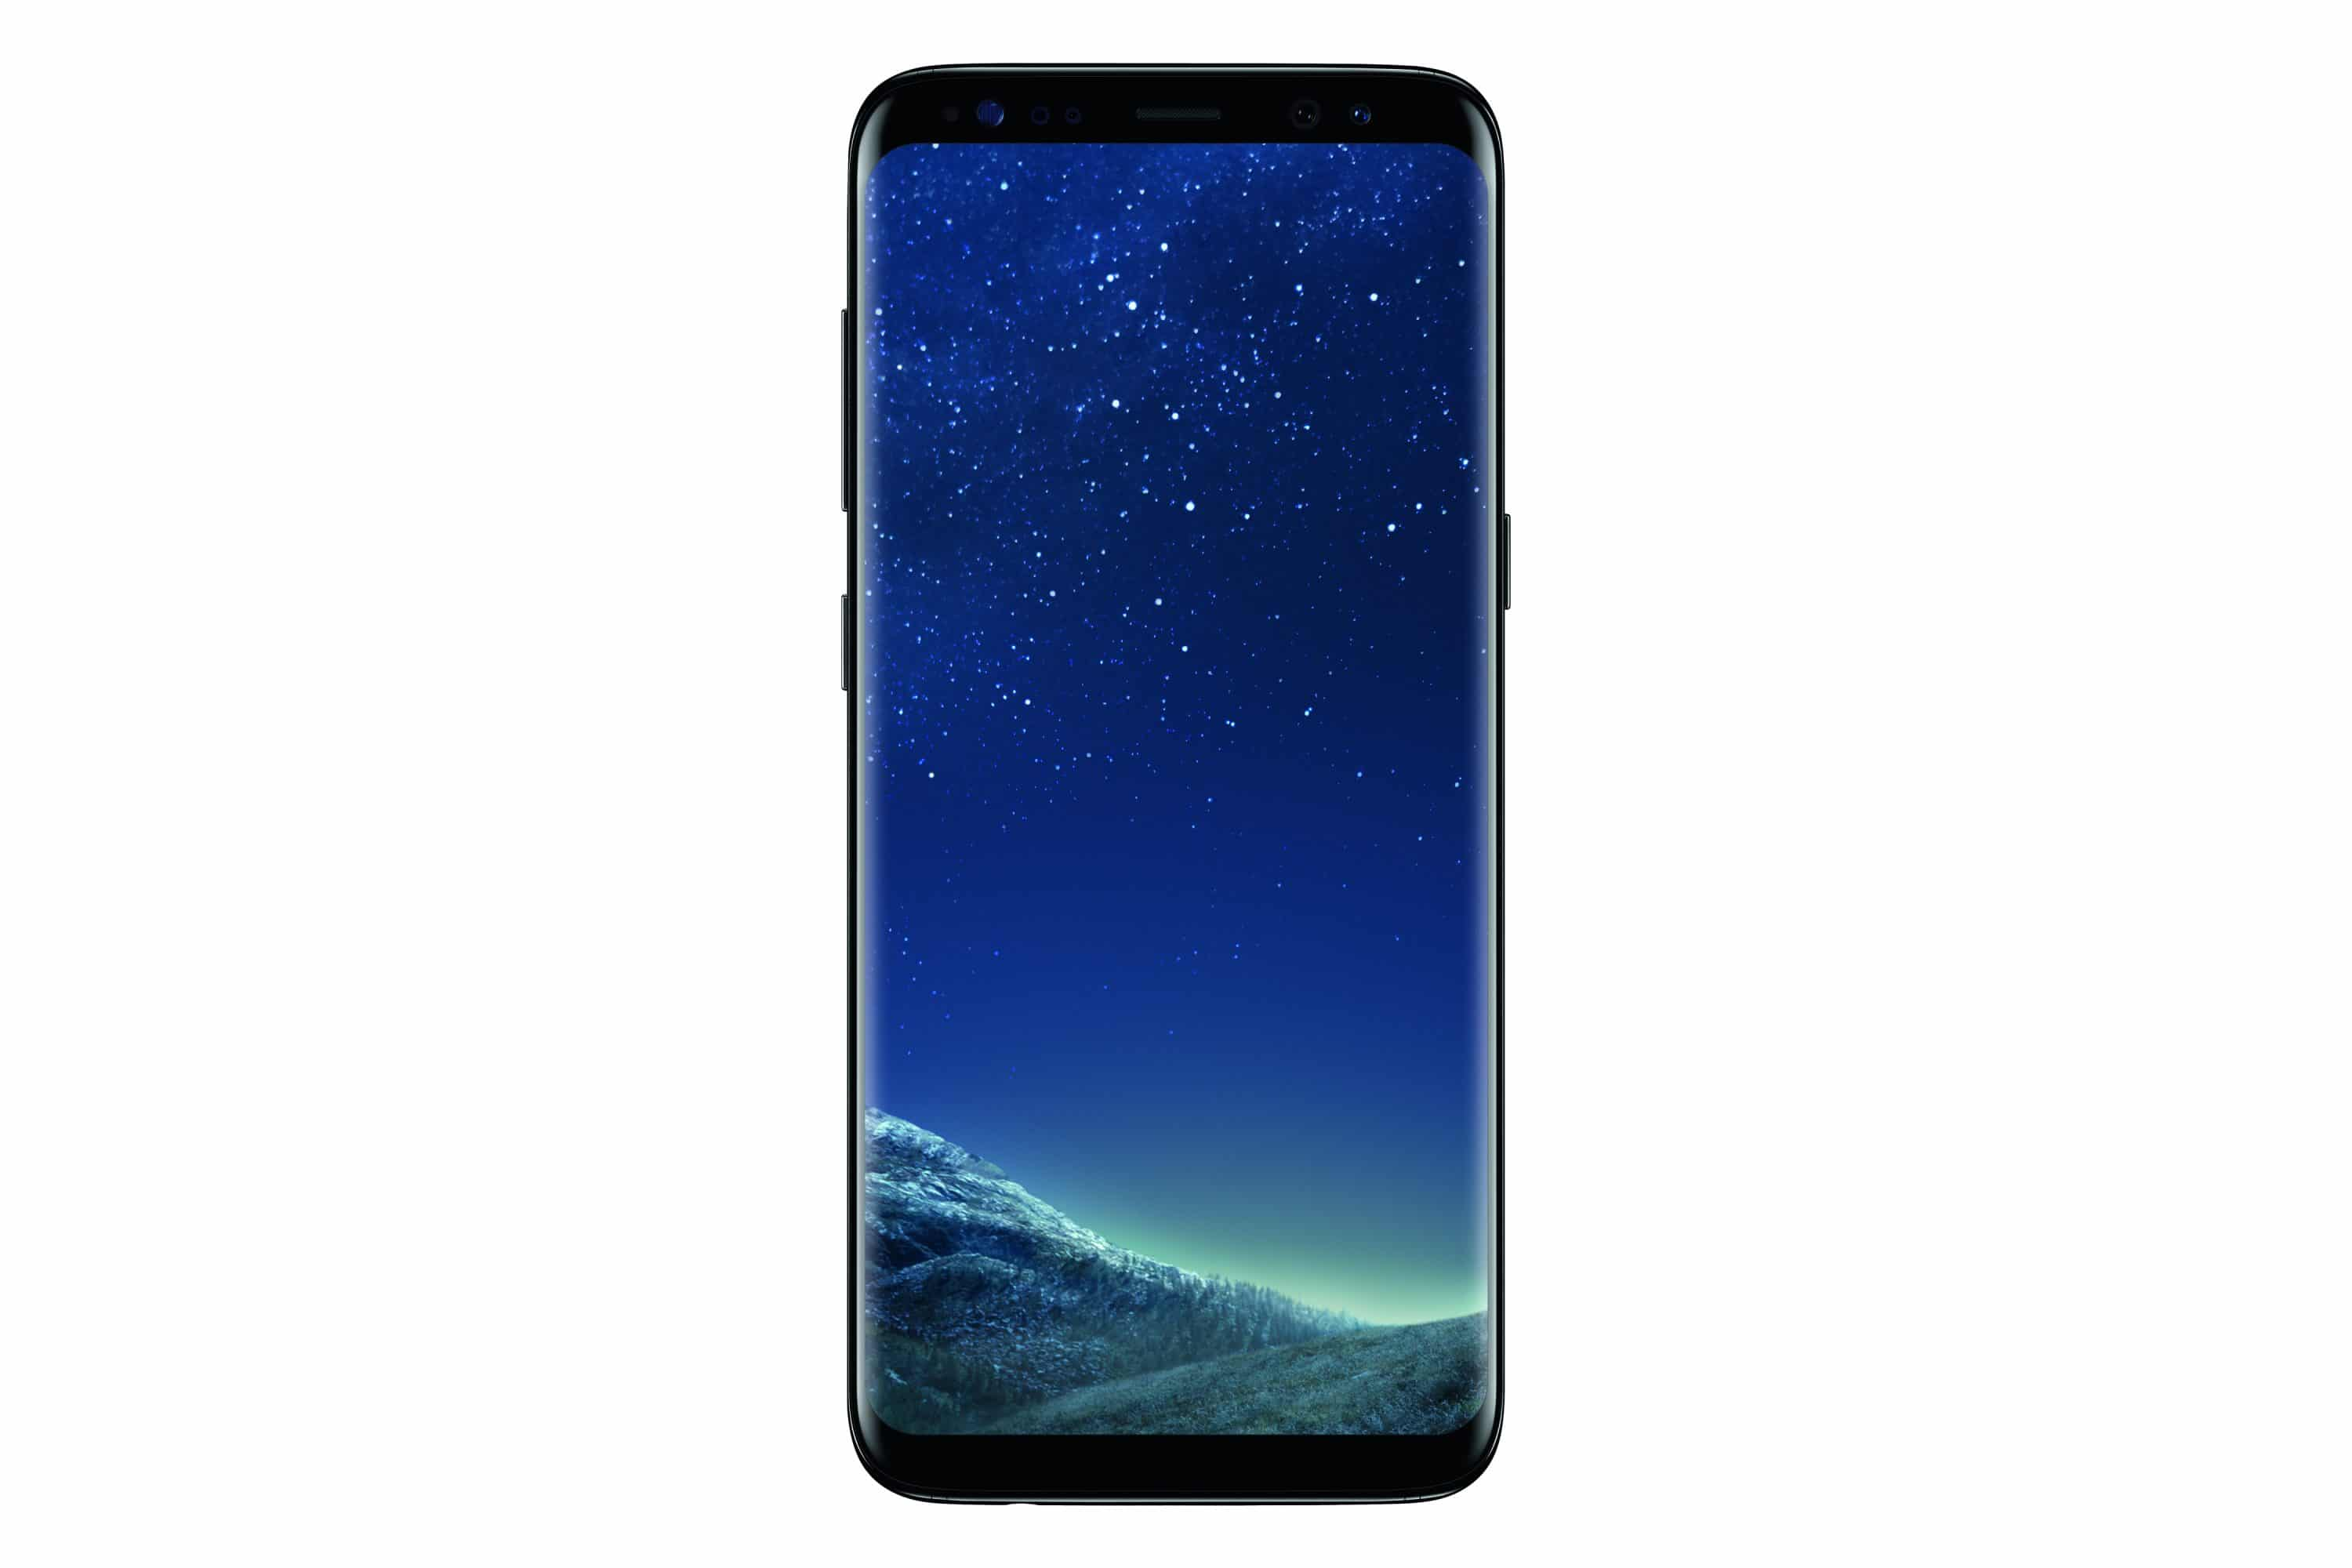 samsungs neue smartphone flaggschiffe galaxy s8 s8 mit. Black Bedroom Furniture Sets. Home Design Ideas